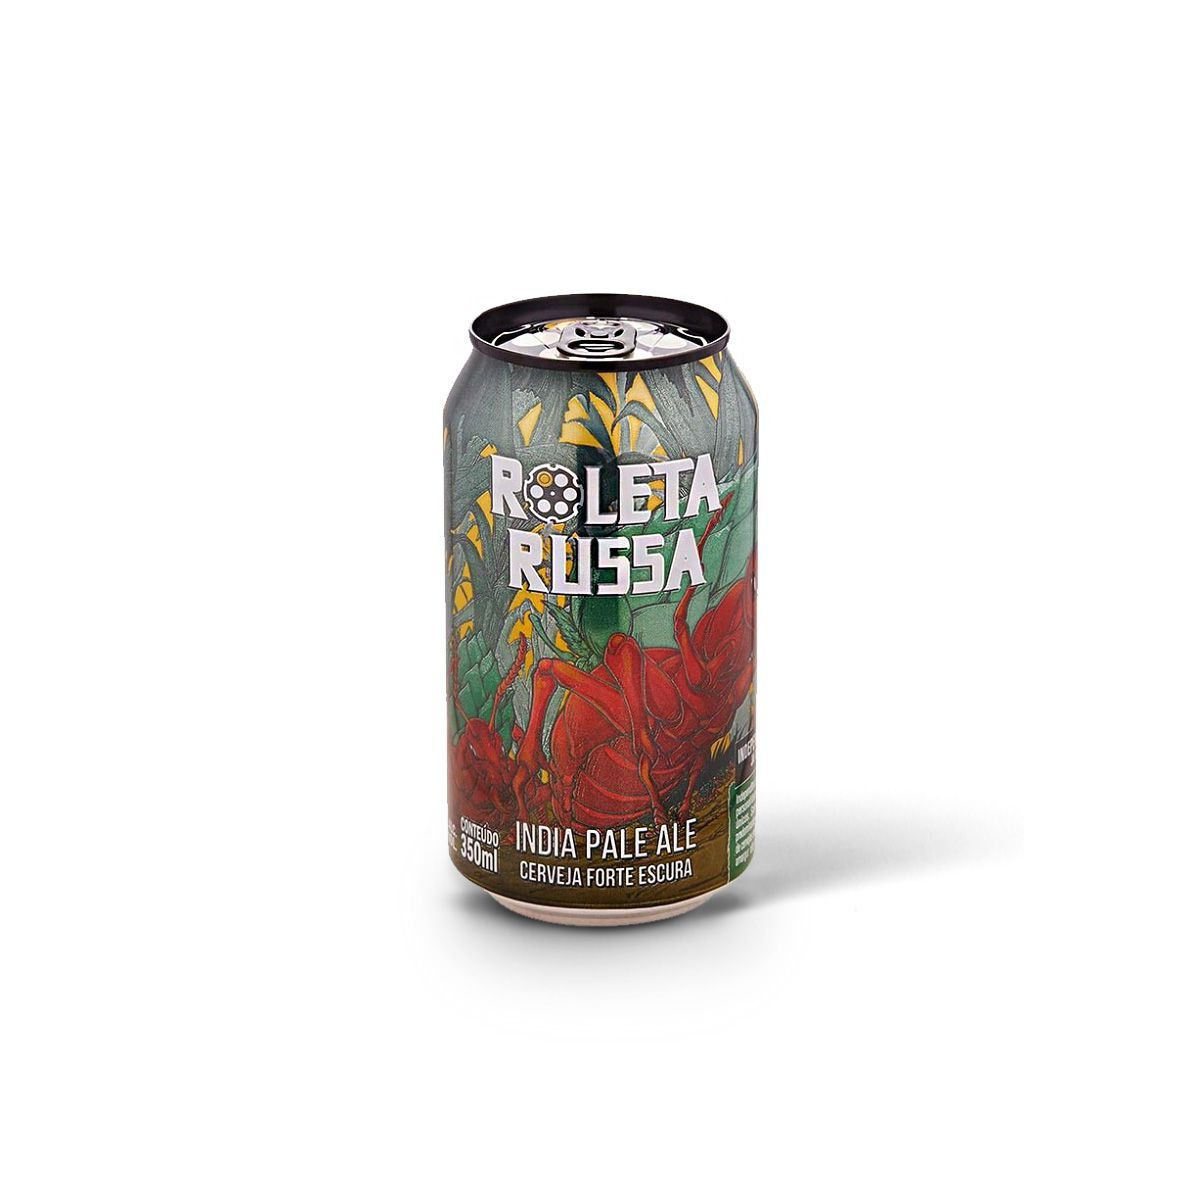 Roleta Russa India Pale Ale IPA 350ml